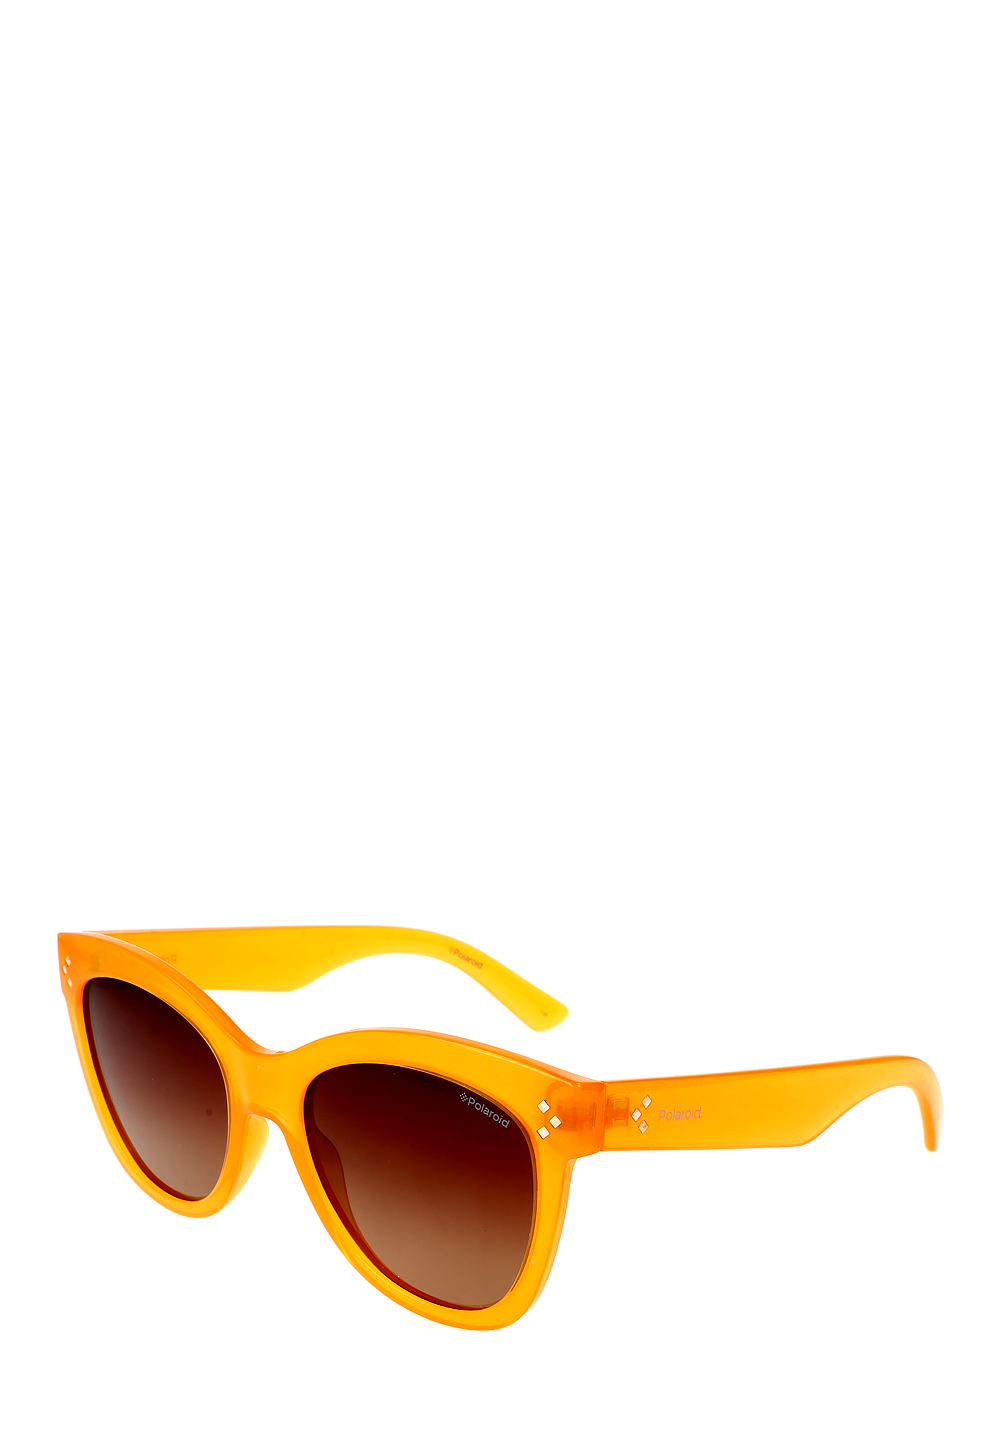 Sonnenbrille Pld4040/S, polarized, Uv400, yellow gelb